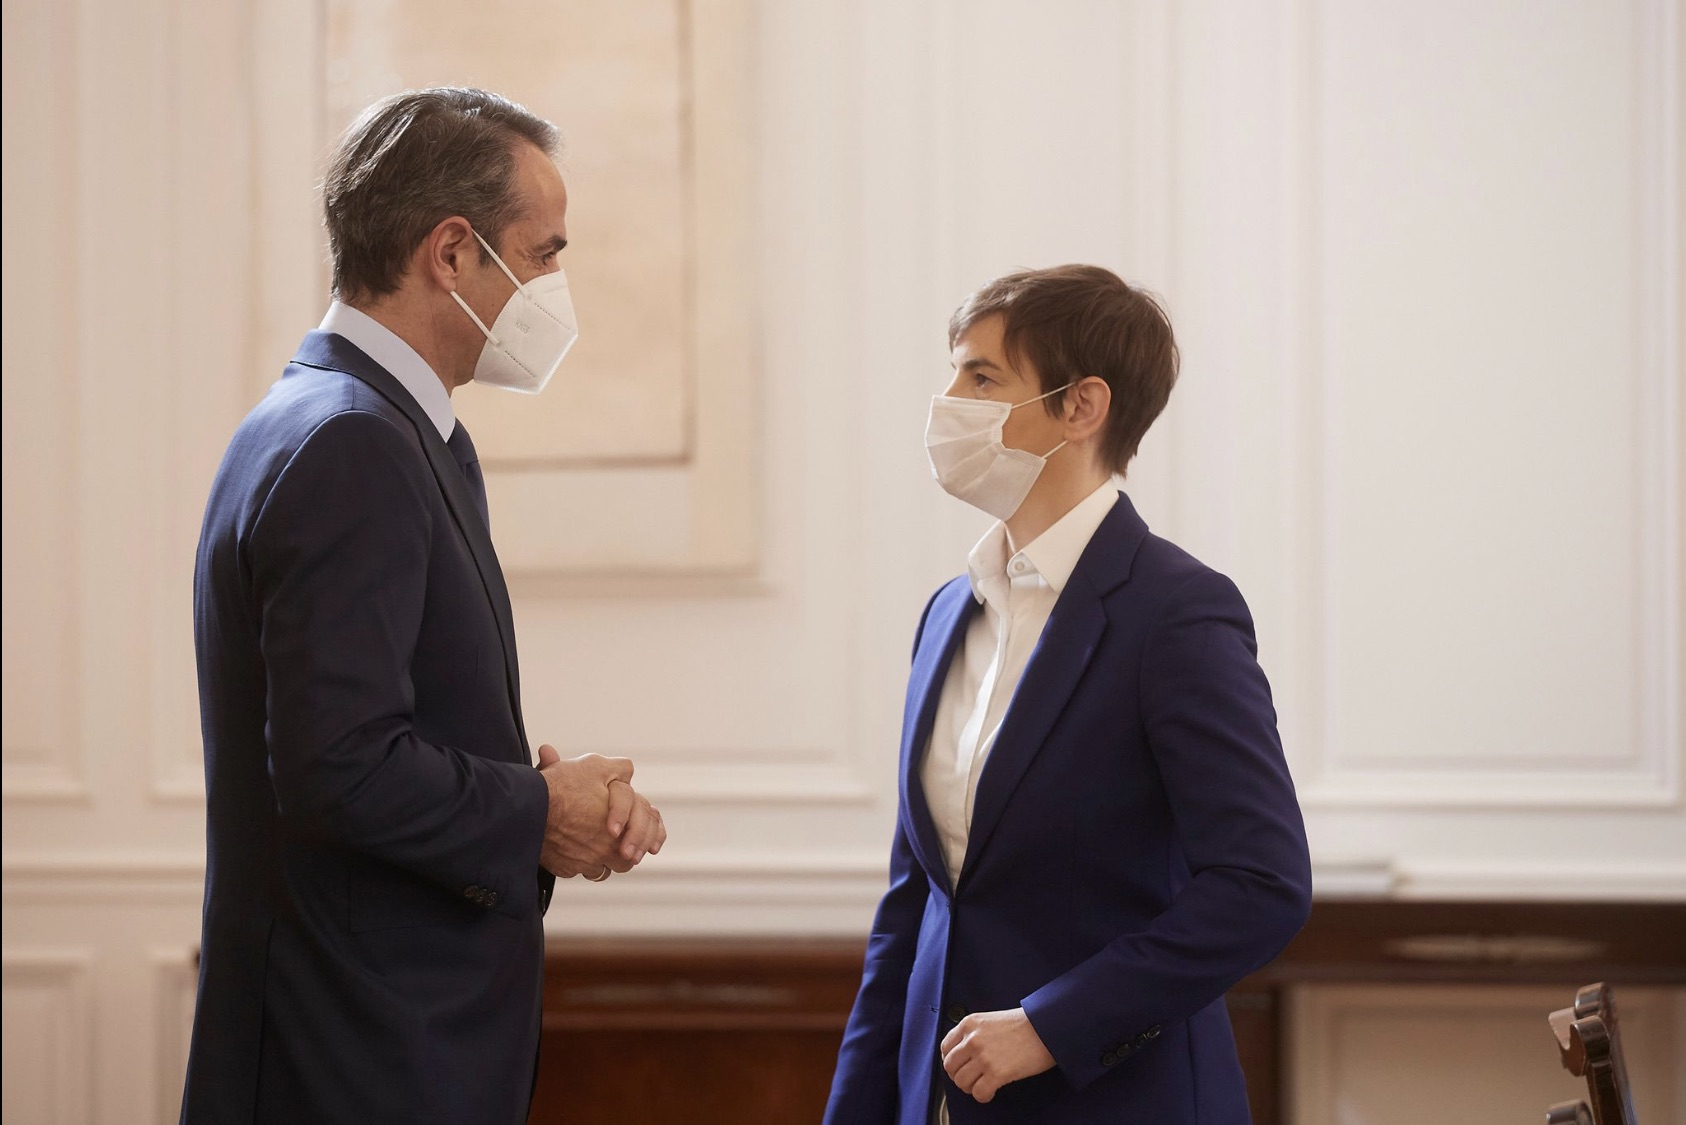 The expansion of bilateral cooperation was discussed by Mitsotakis and Brnabić